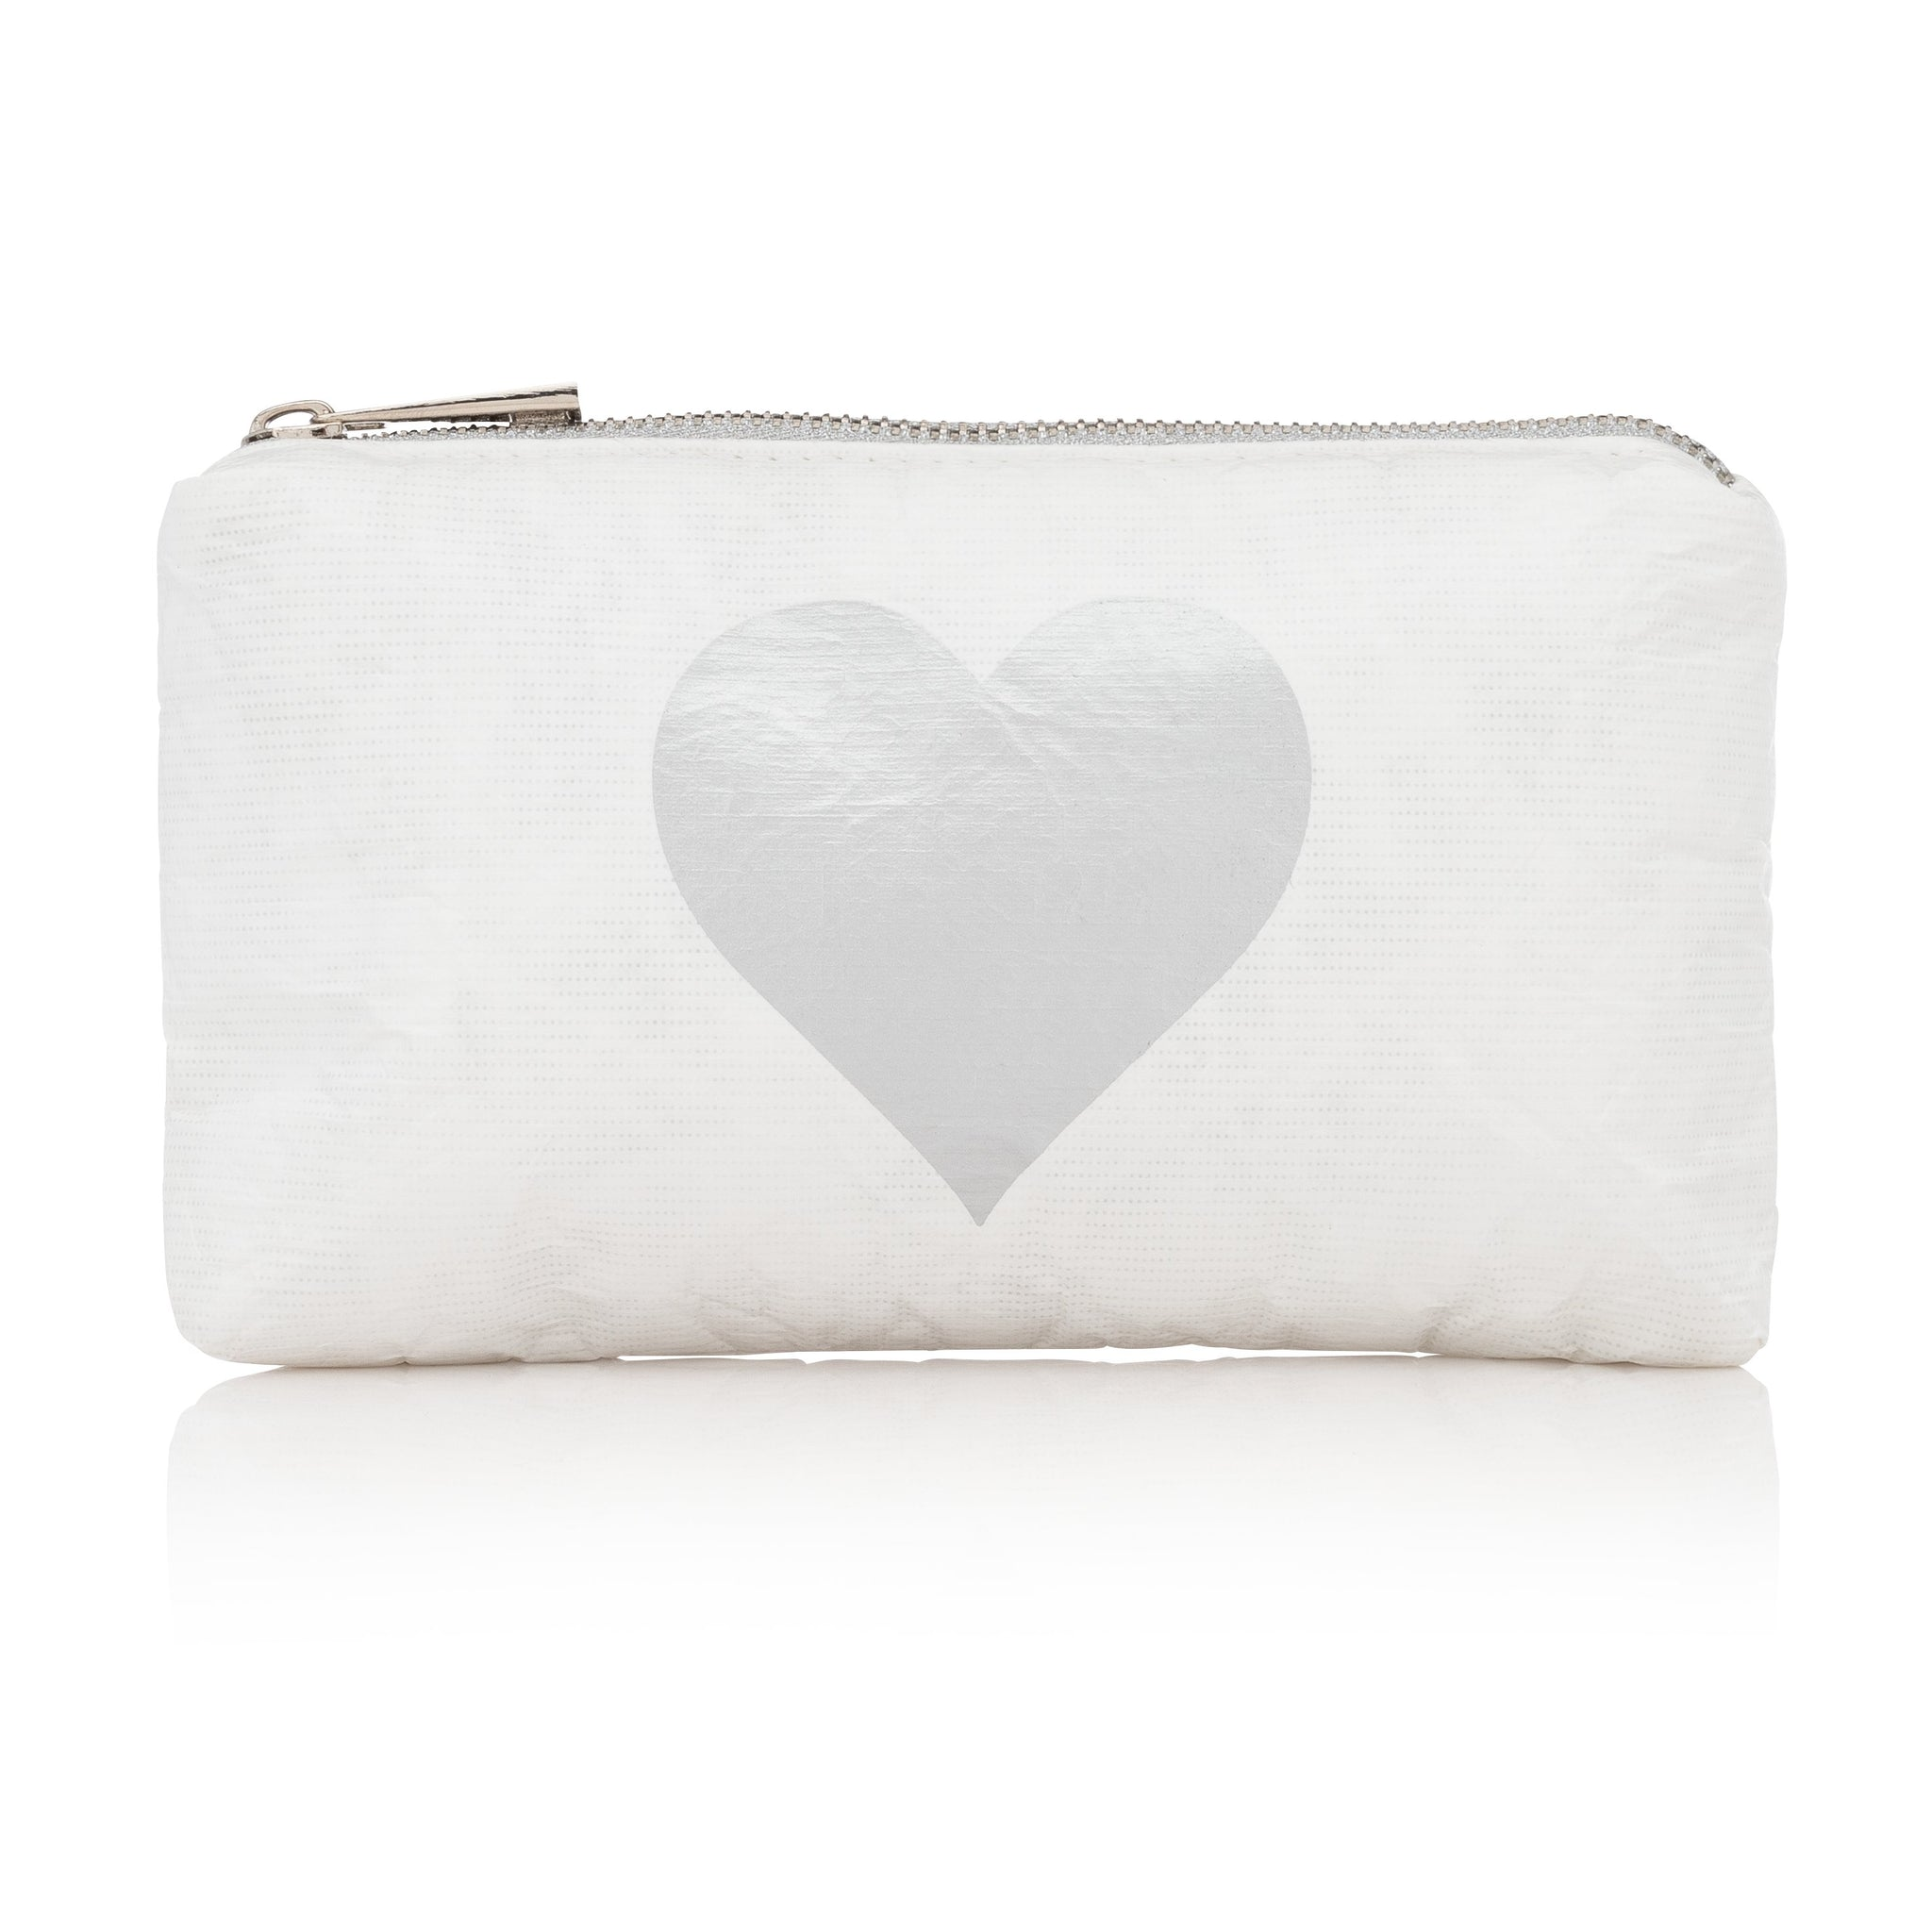 Mini Padded Pack - White with Metallic Silver Heart